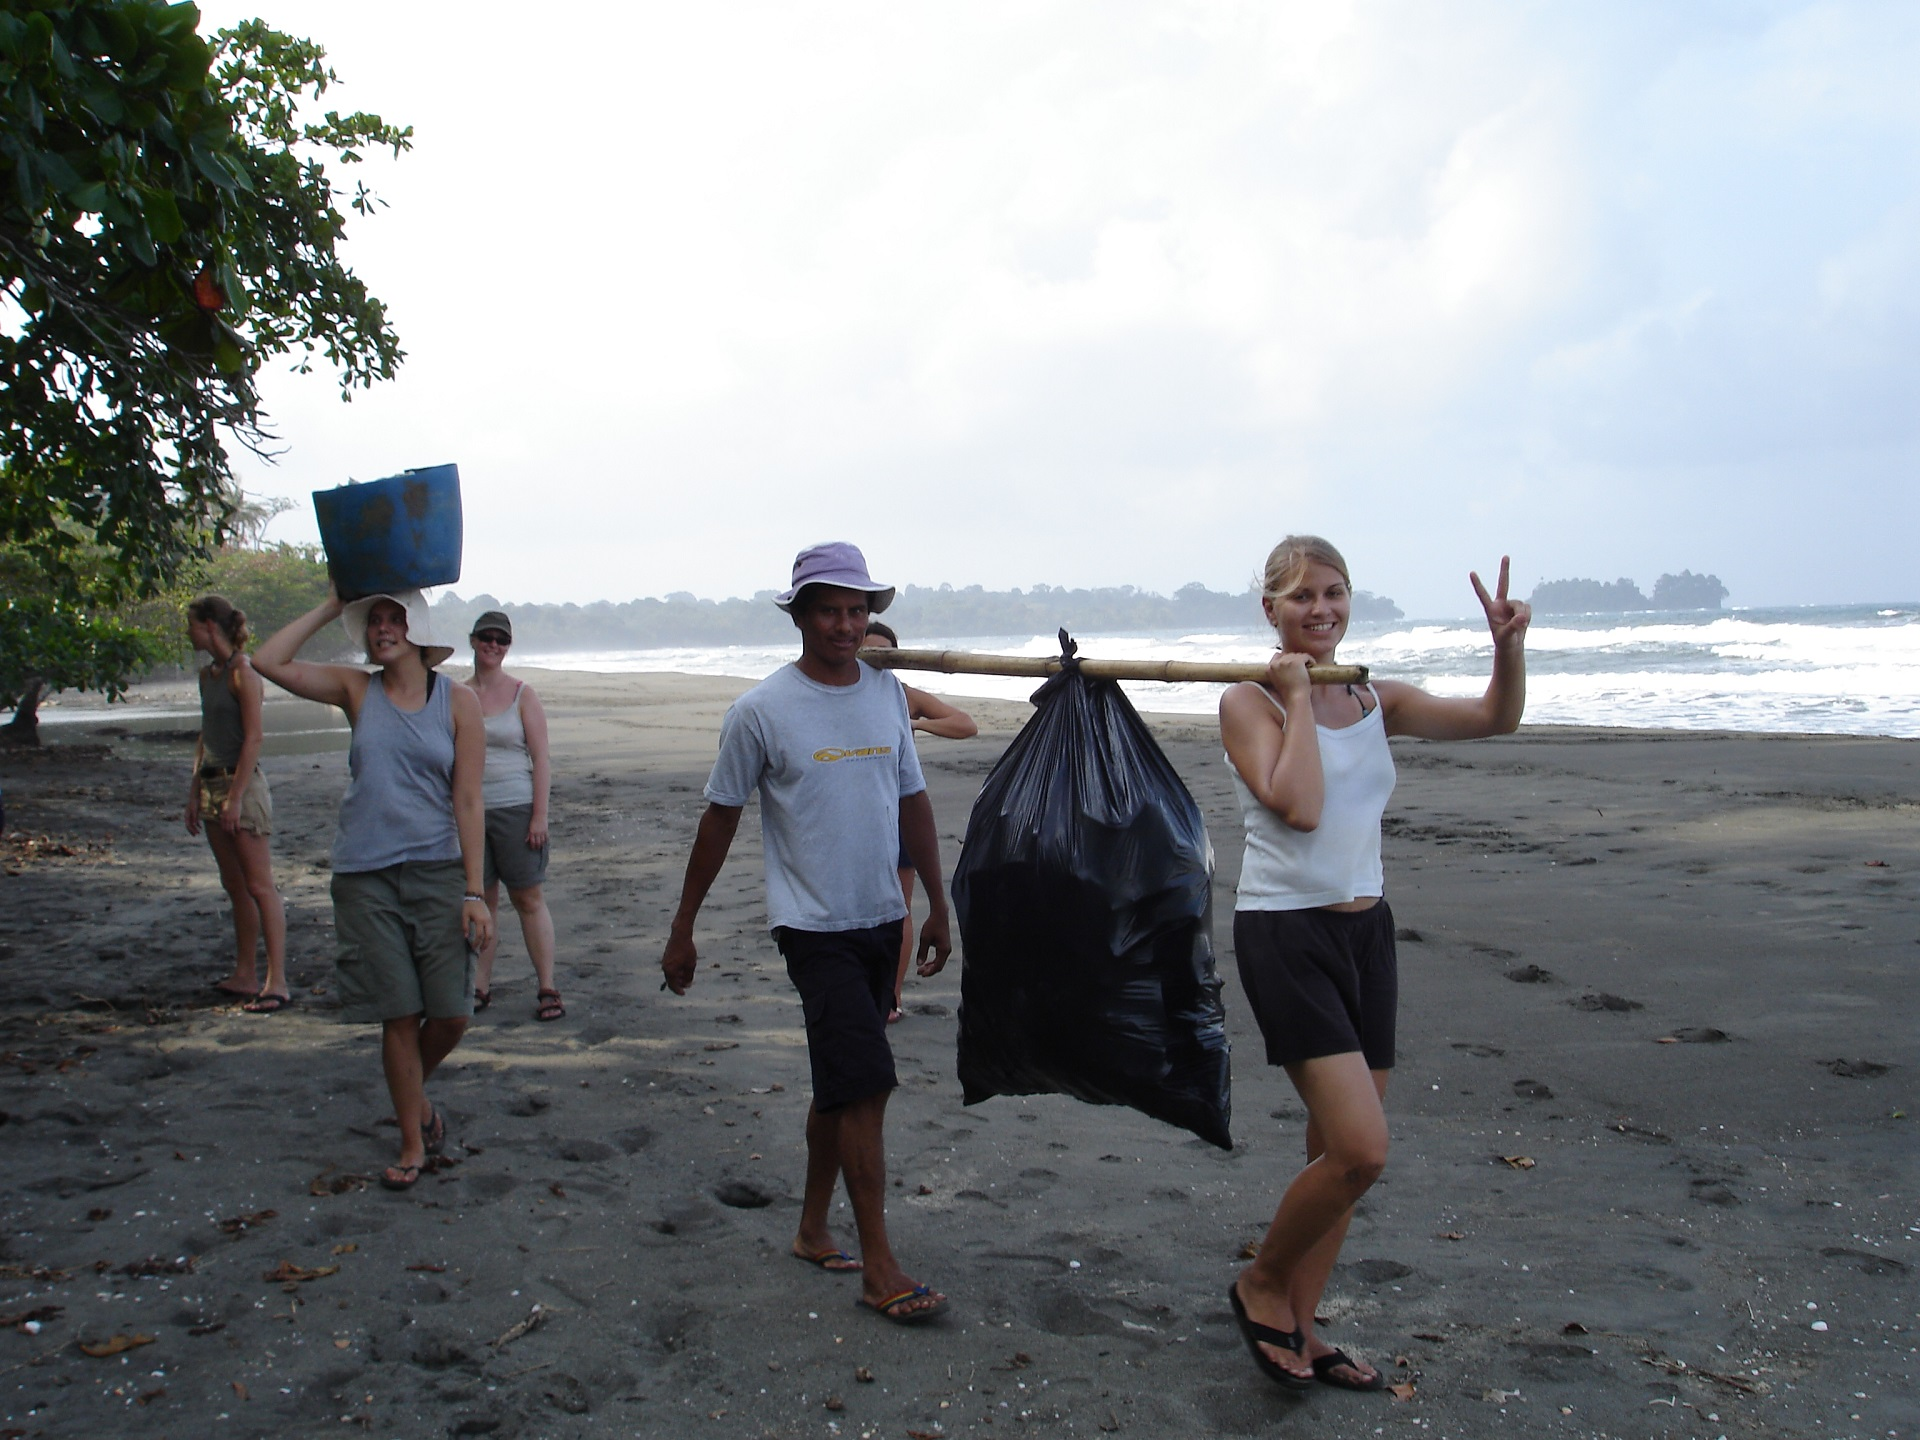 volunteereco.org volunteer for sea turtle conservation, collecting sea turtle egs